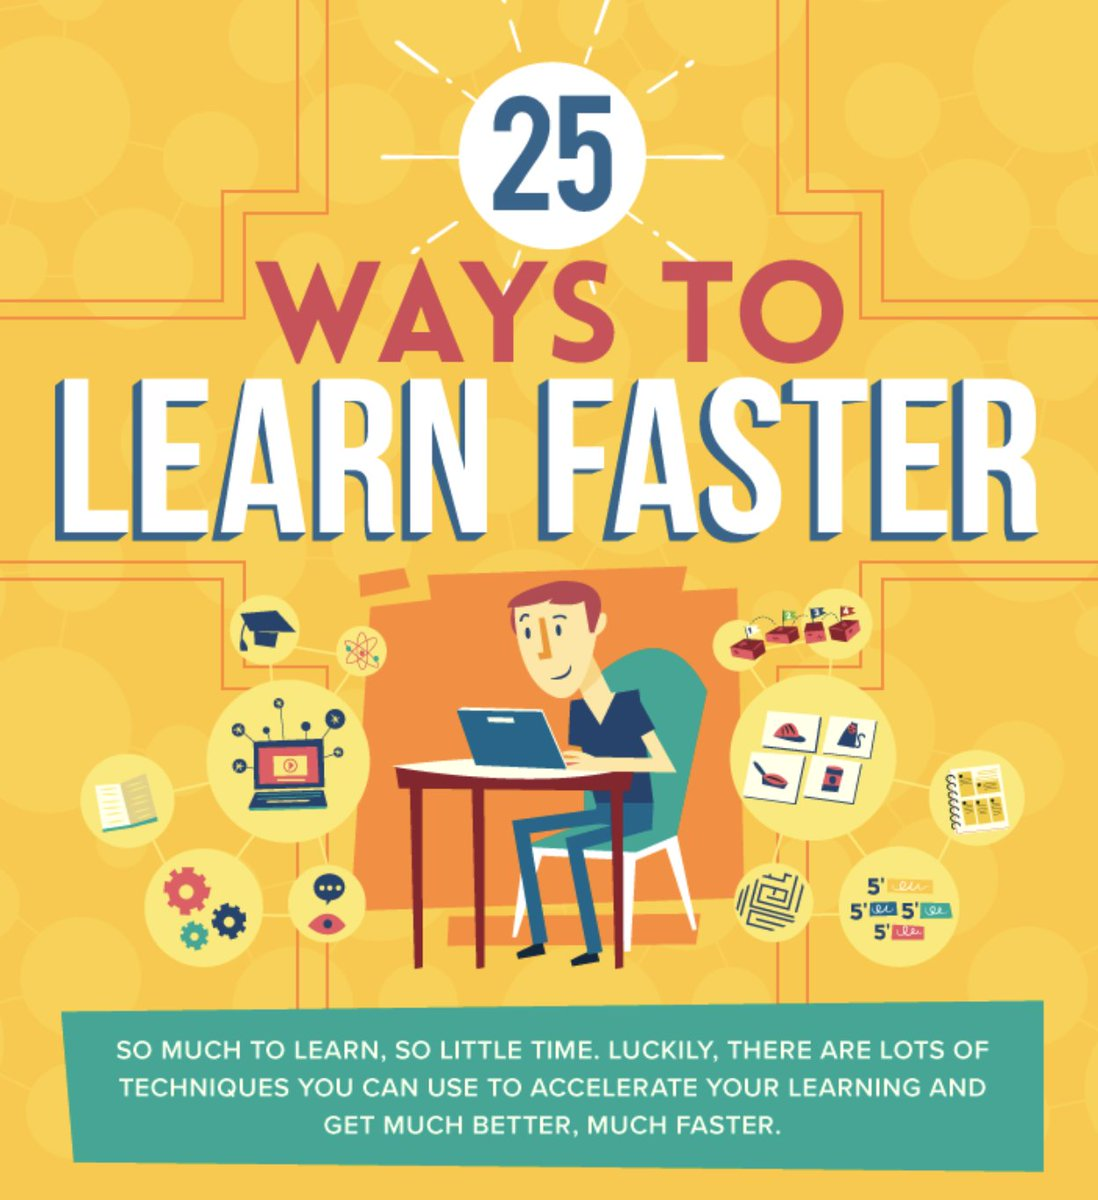 How #Entrepreneurs Can Learn Anything Faster  - Do quick mental activities - Create a learning timetable - Do one task at a time - Test yourself - Don&#39;t forget rewards - Don&#39;t cram - Set reminders - Give yourself time - Take breaks - Vary sessions - Change up environment <br>http://pic.twitter.com/fbH2G4WiqV